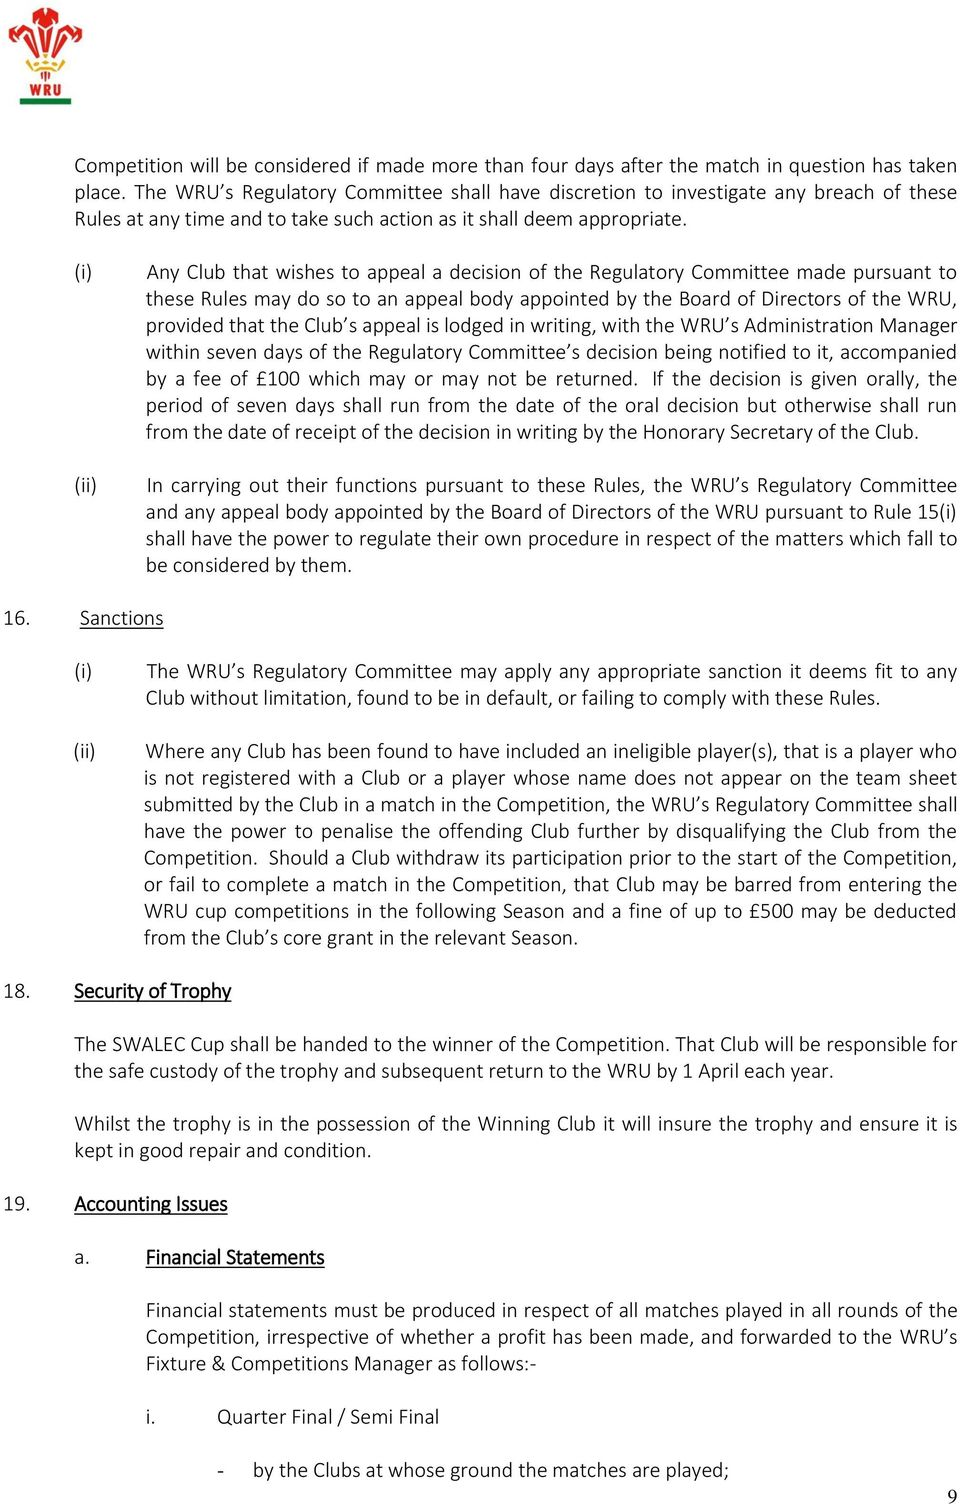 (i) (ii) Any Club that wishes to appeal a decision of the Regulatory Committee made pursuant to these Rules may do so to an appeal body appointed by the Board of Directors of the WRU, provided that